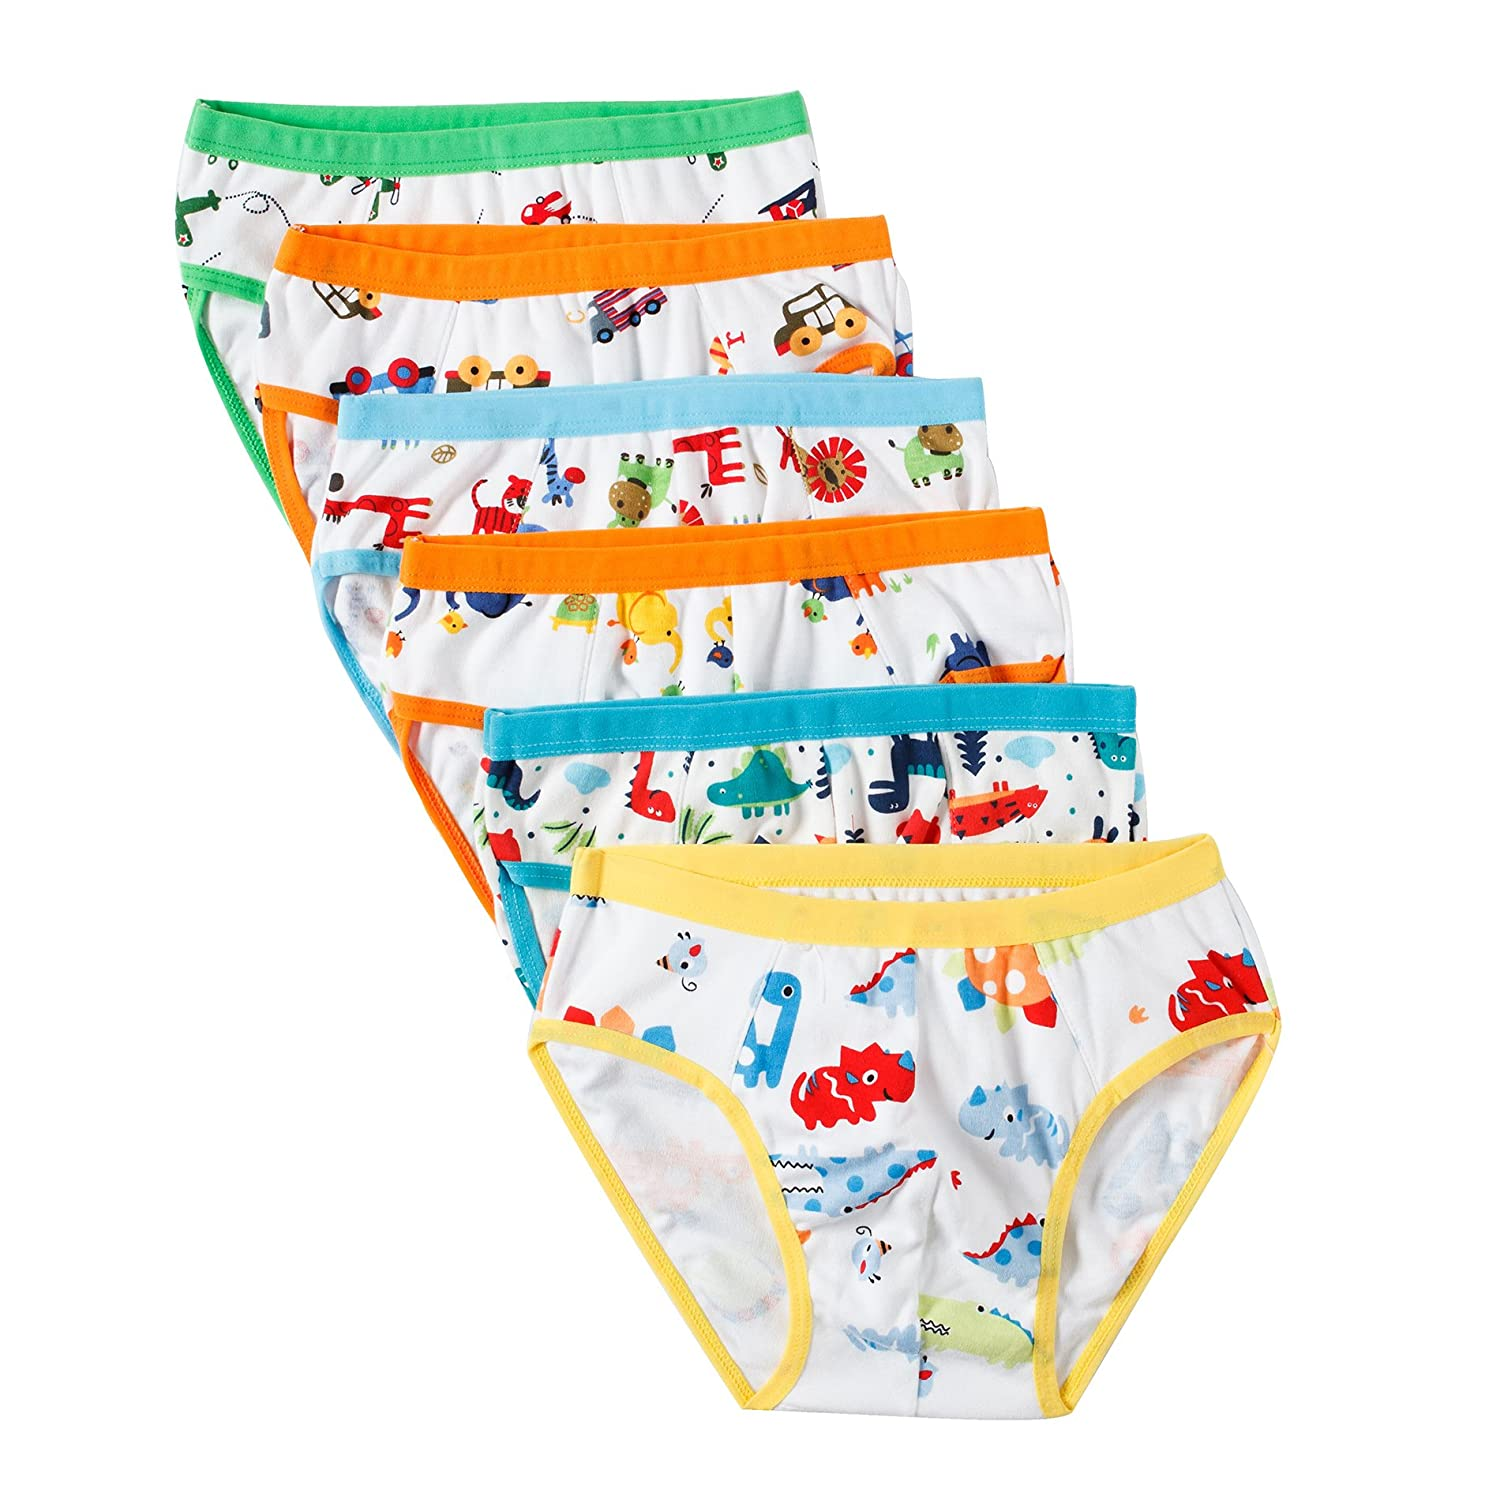 BOBO Kids Little Boys Car Briefs Underwear Toddler (Pack Of 6)